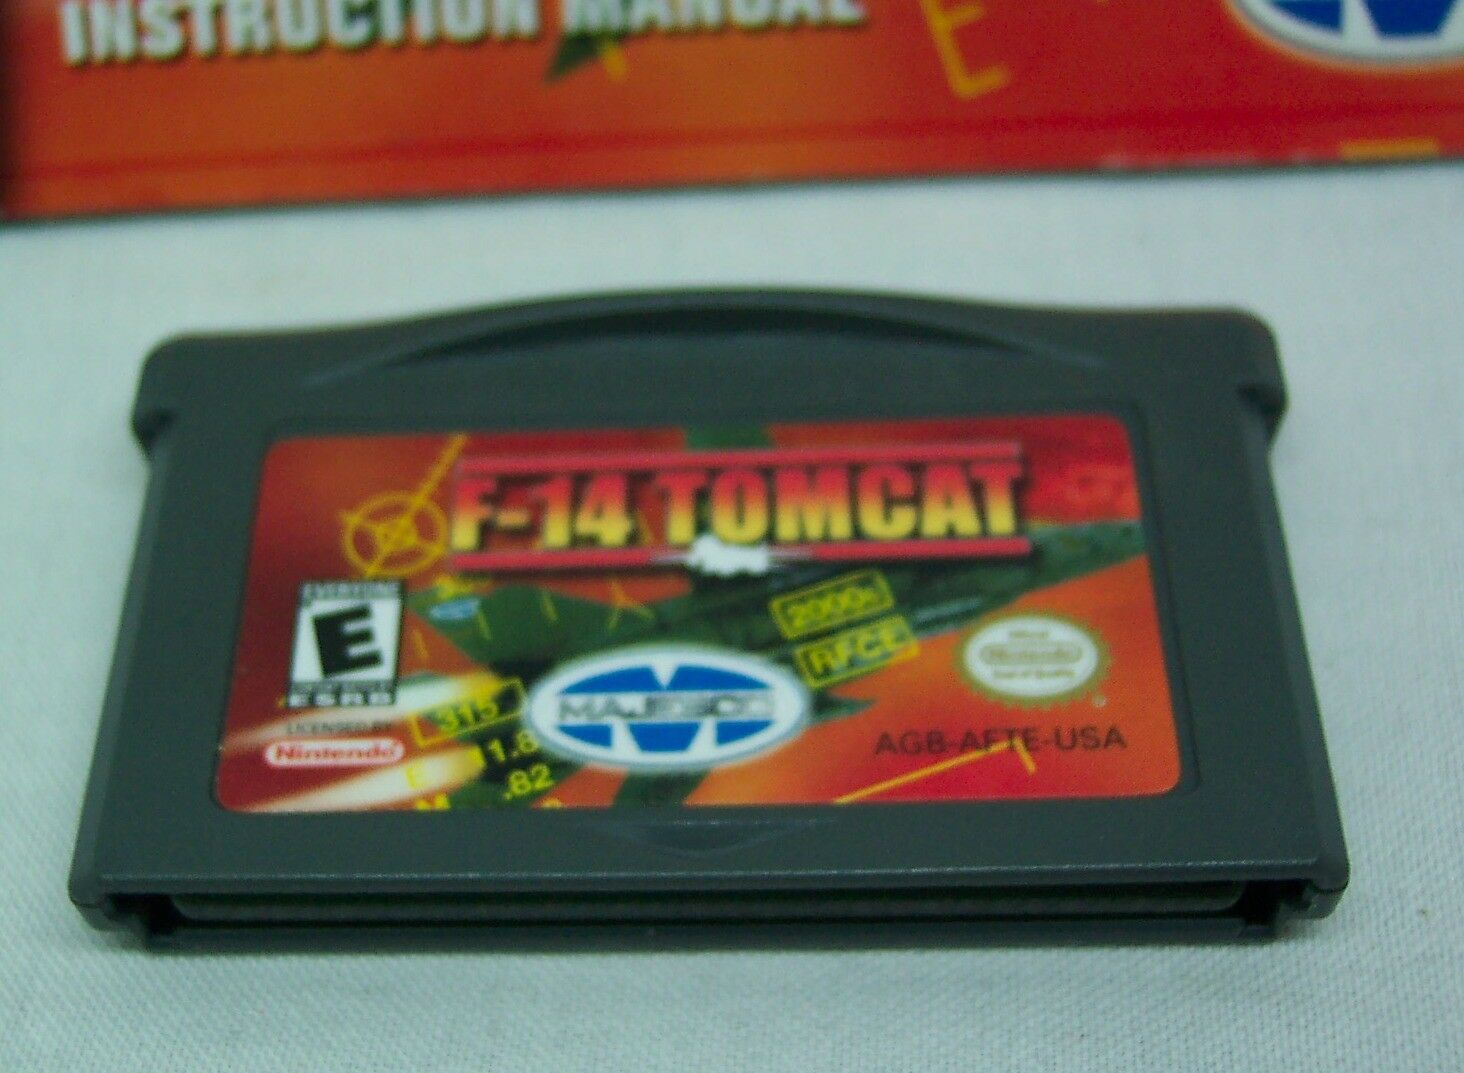 F-14 TOMCAT NINTENDO GAME BOY ADVANCE GAME 2001 with MANUAL